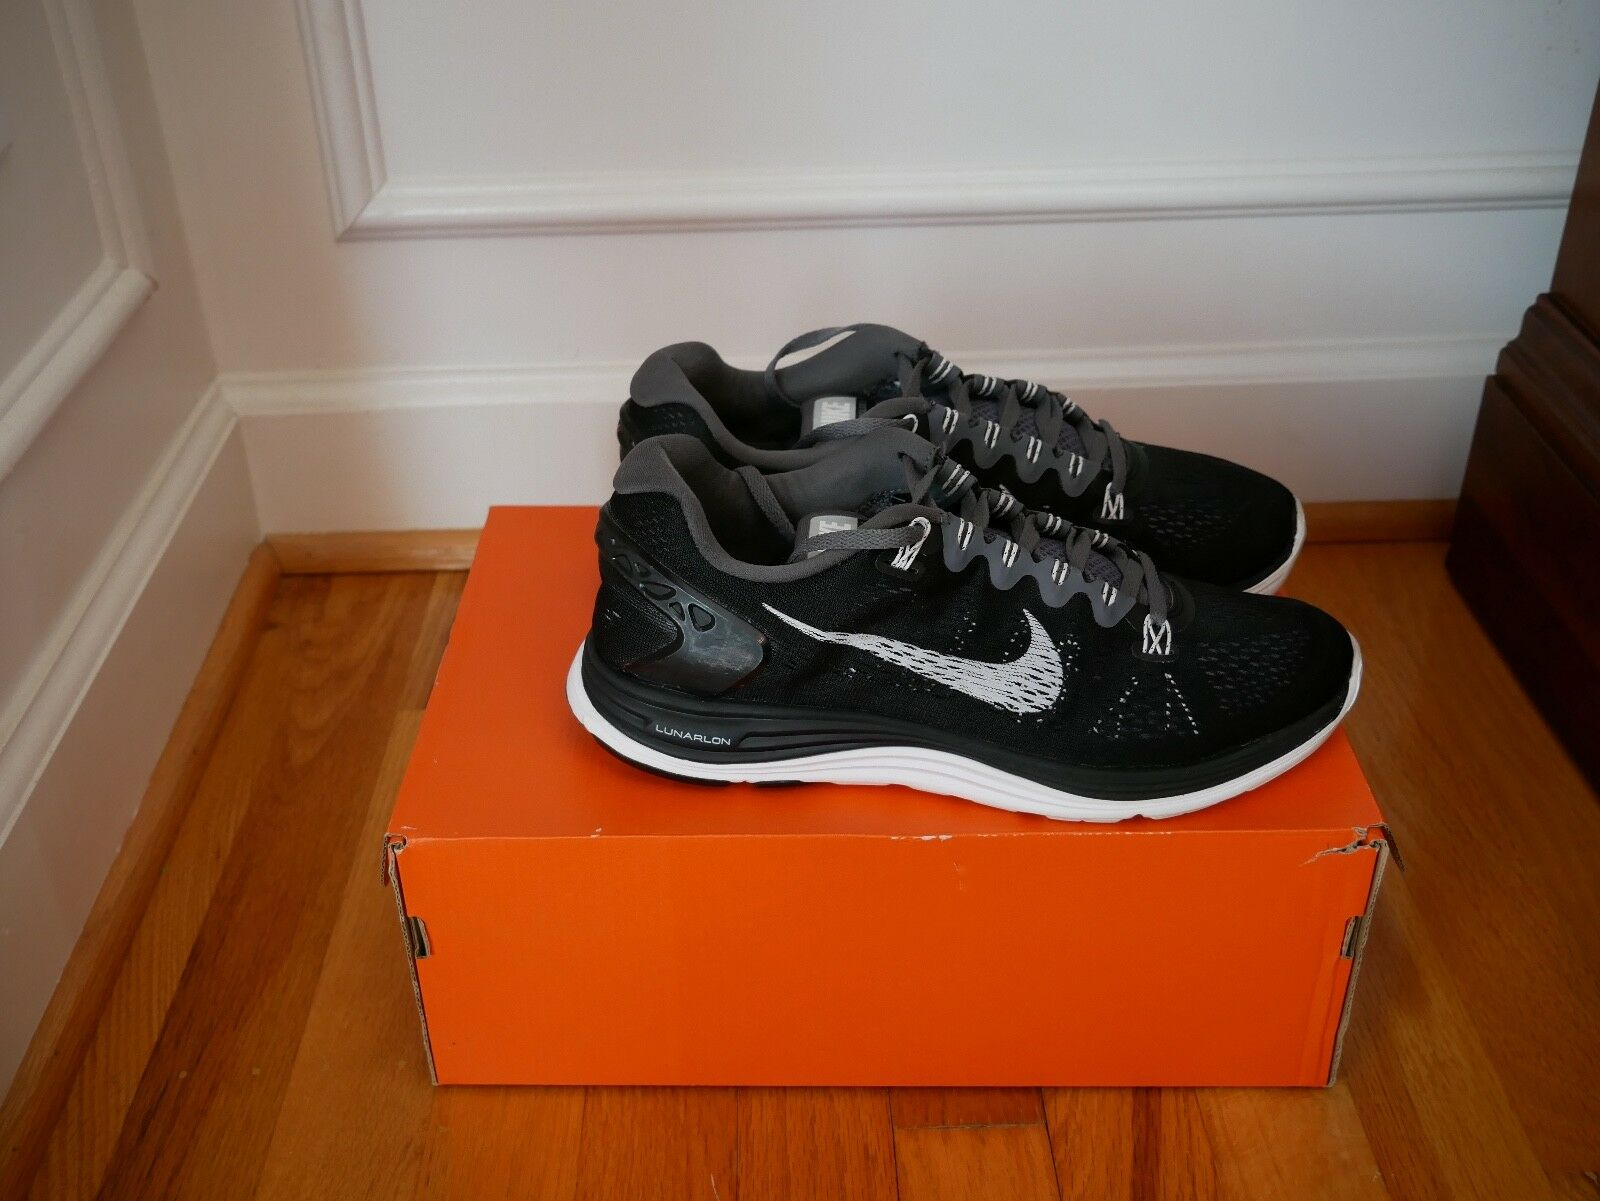 Nike Lunarglide Men's 8; Great Condition; Black and White Seasonal clearance sale